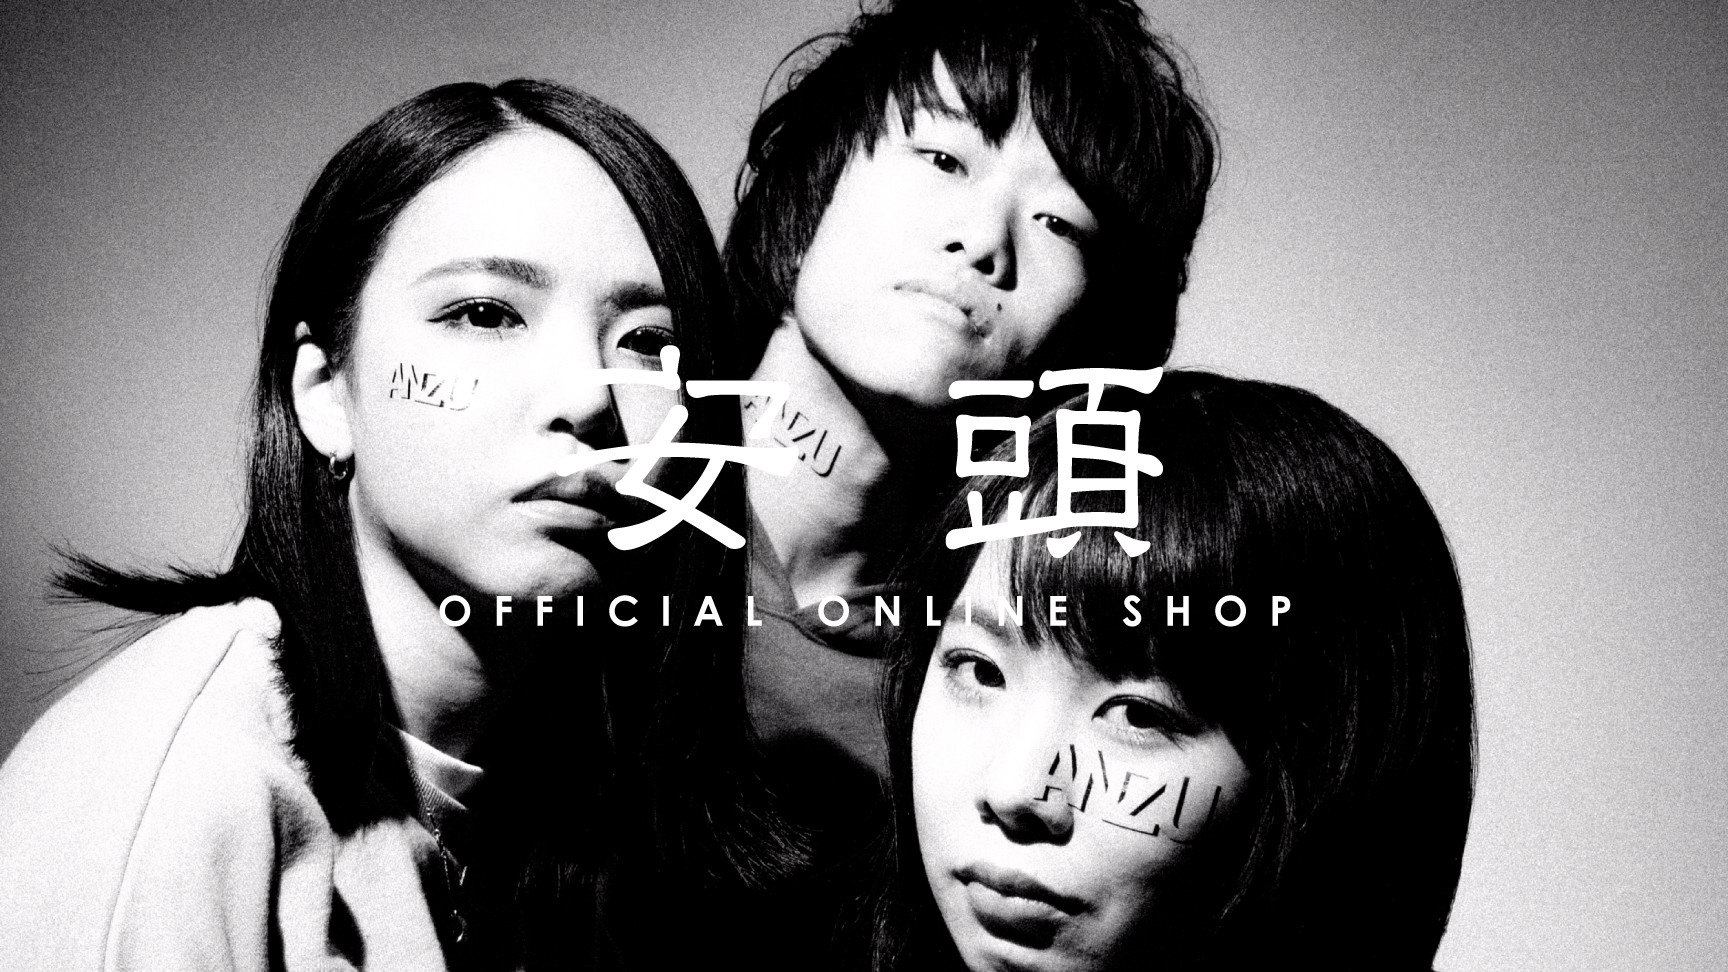 安頭 OFFICIAL ONLINE SHOP